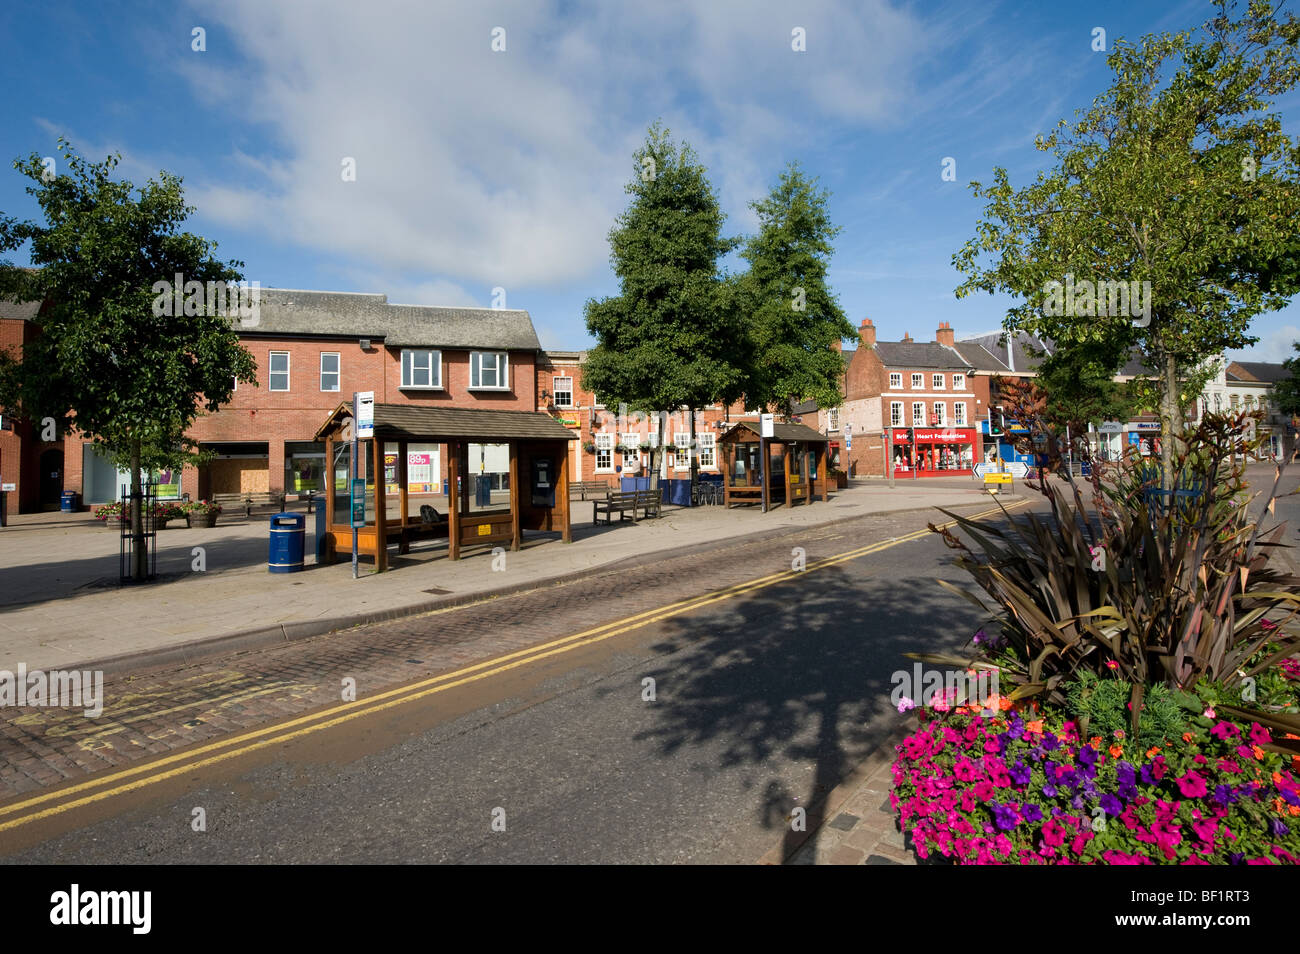 Bus stops in the centre of the pretty market town of Market Harborough, Leicestershire - Stock Image